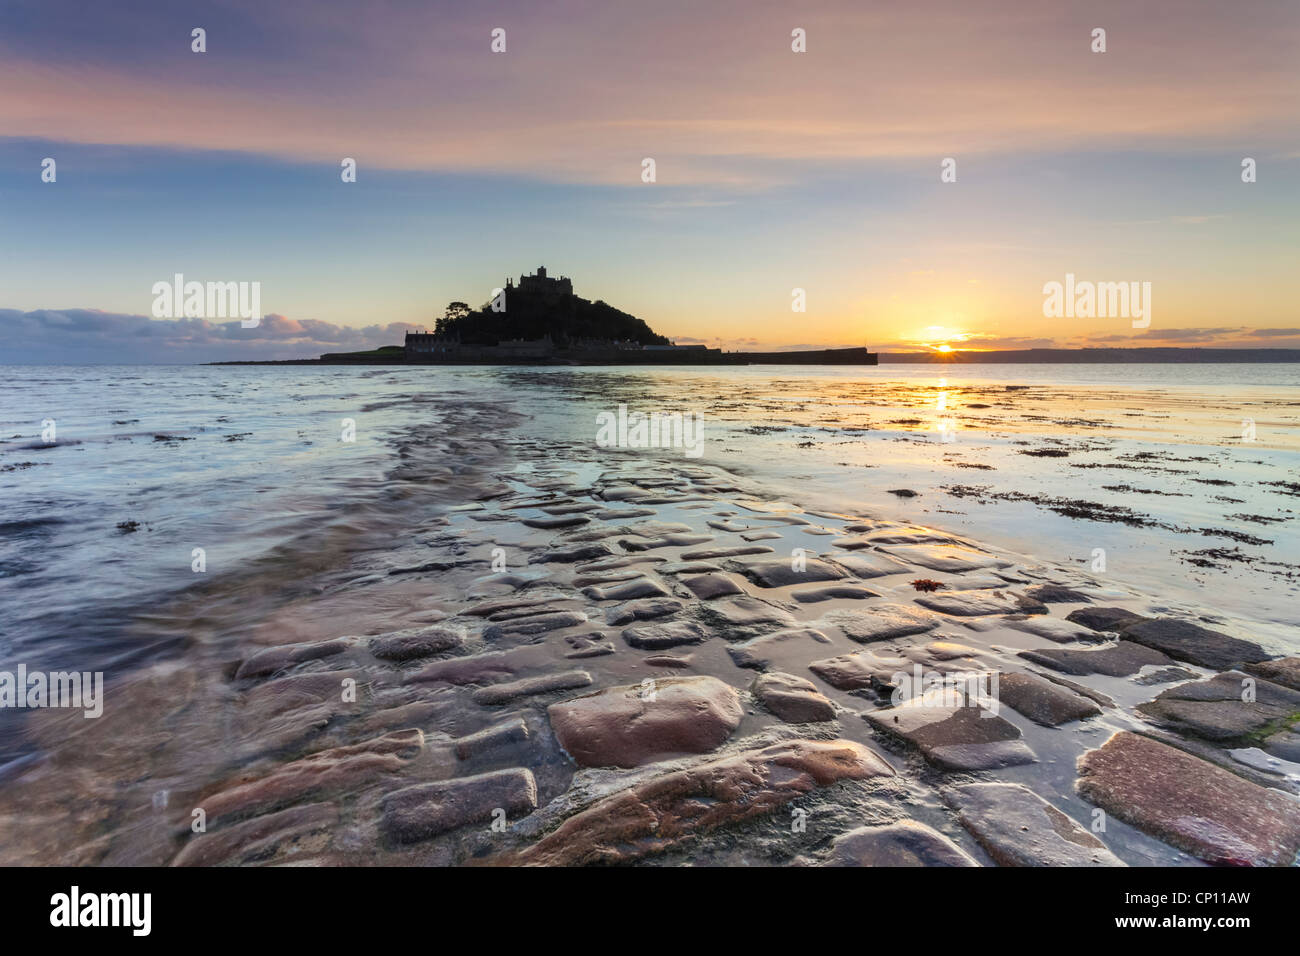 The causeway to St Michael's Mount captured at sunset - Stock Image